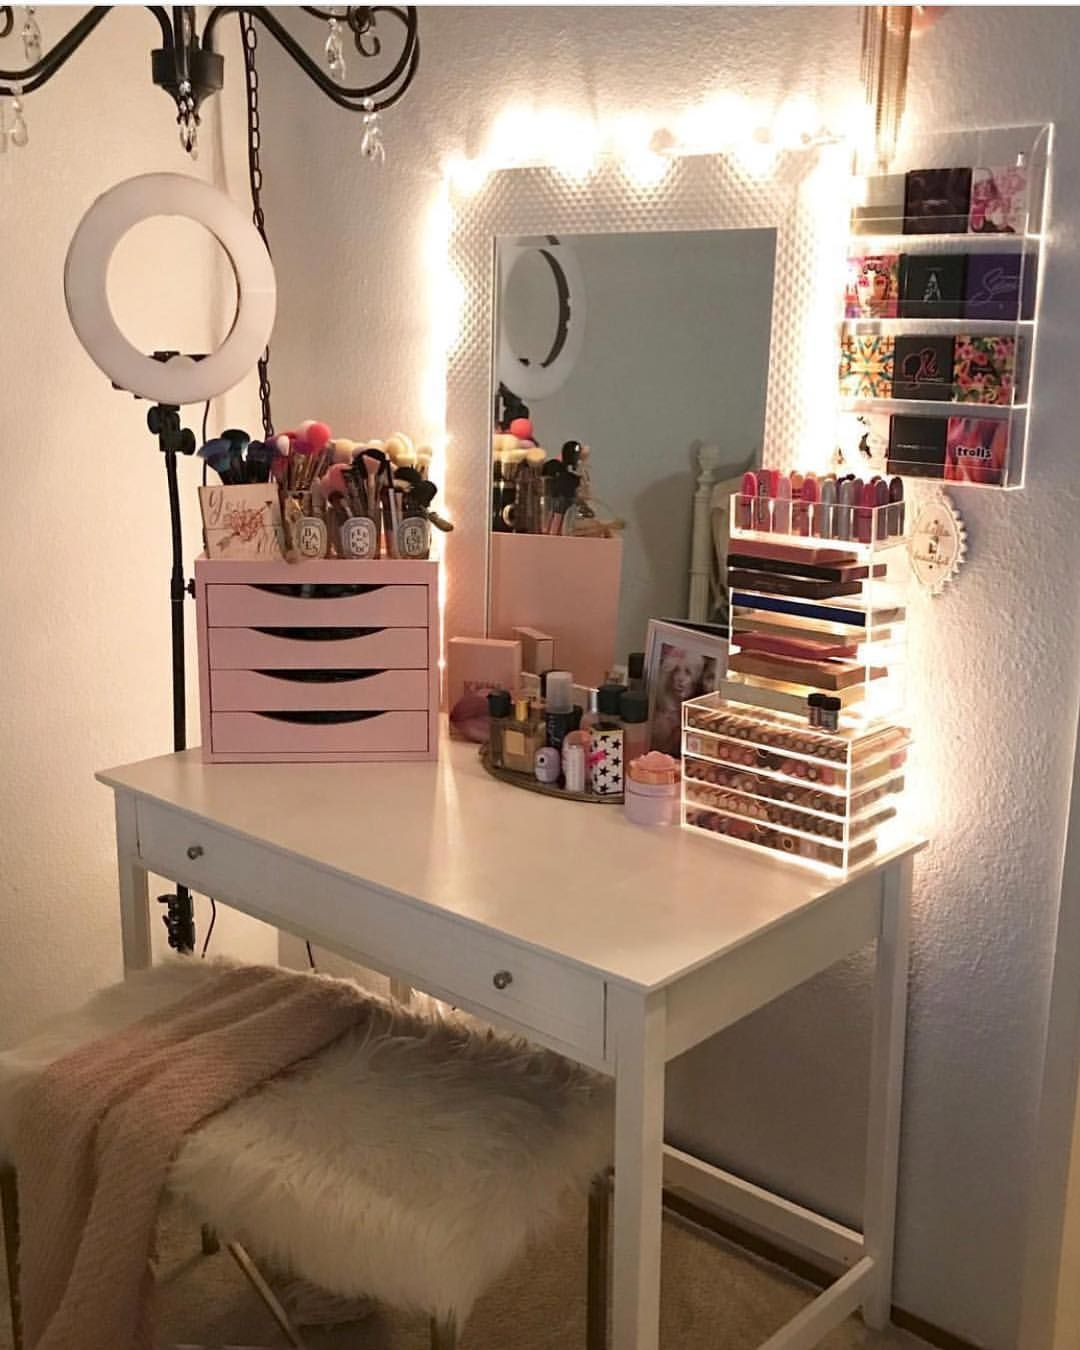 elysian22 Cute Vanity 😍 raise your hand if you want this too